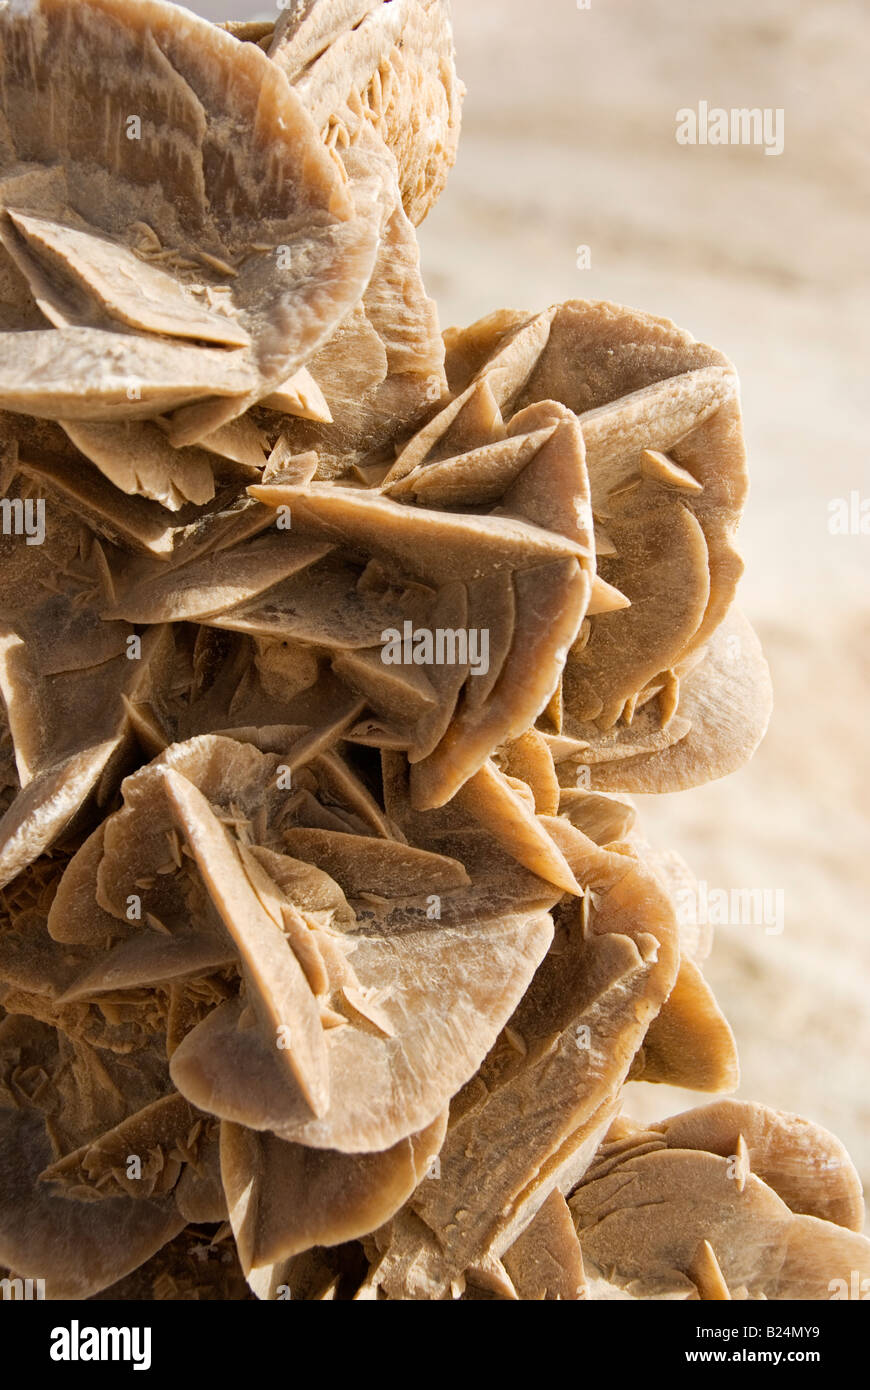 Desert Rose Mineral formation, Tunisia - Stock Image